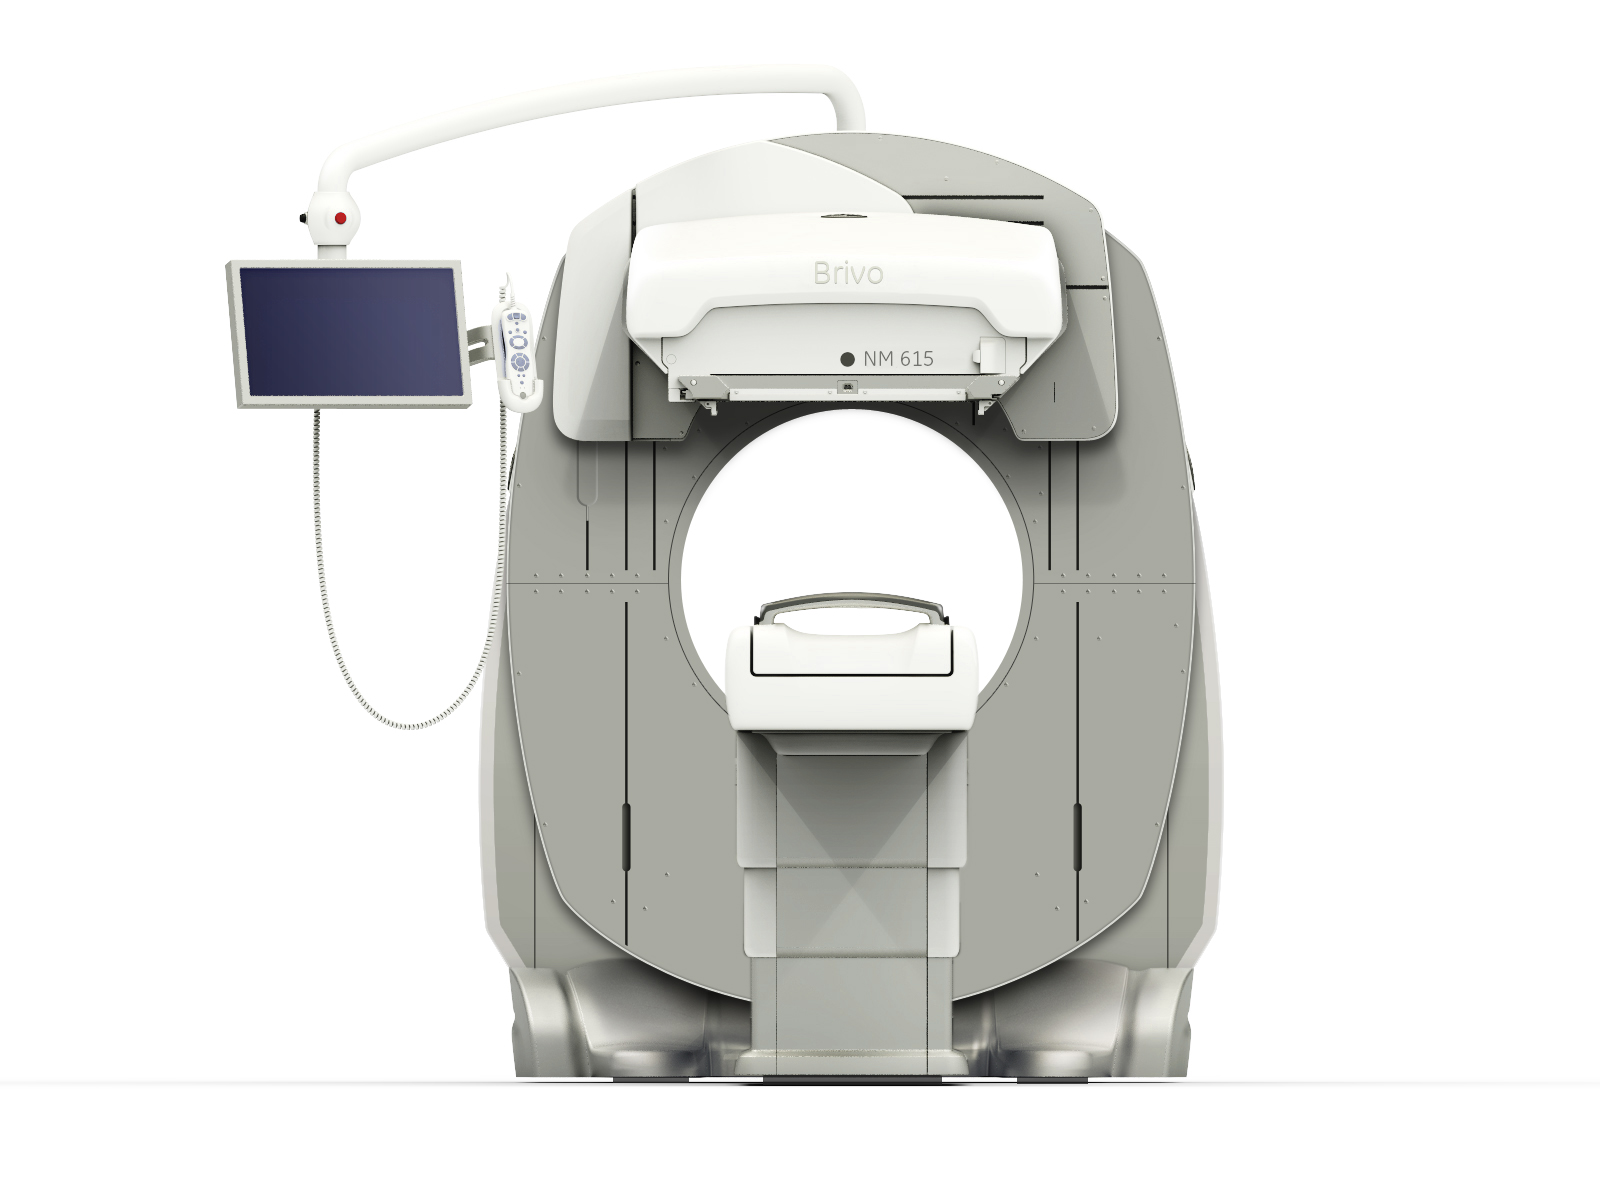 The GE Healthcare Brivo NM 615 SPECT/CT system is an example of the newer detector technology available, which enables lower amounts (up to 50 percent) of radiotracers and the potential for shorter exam times.